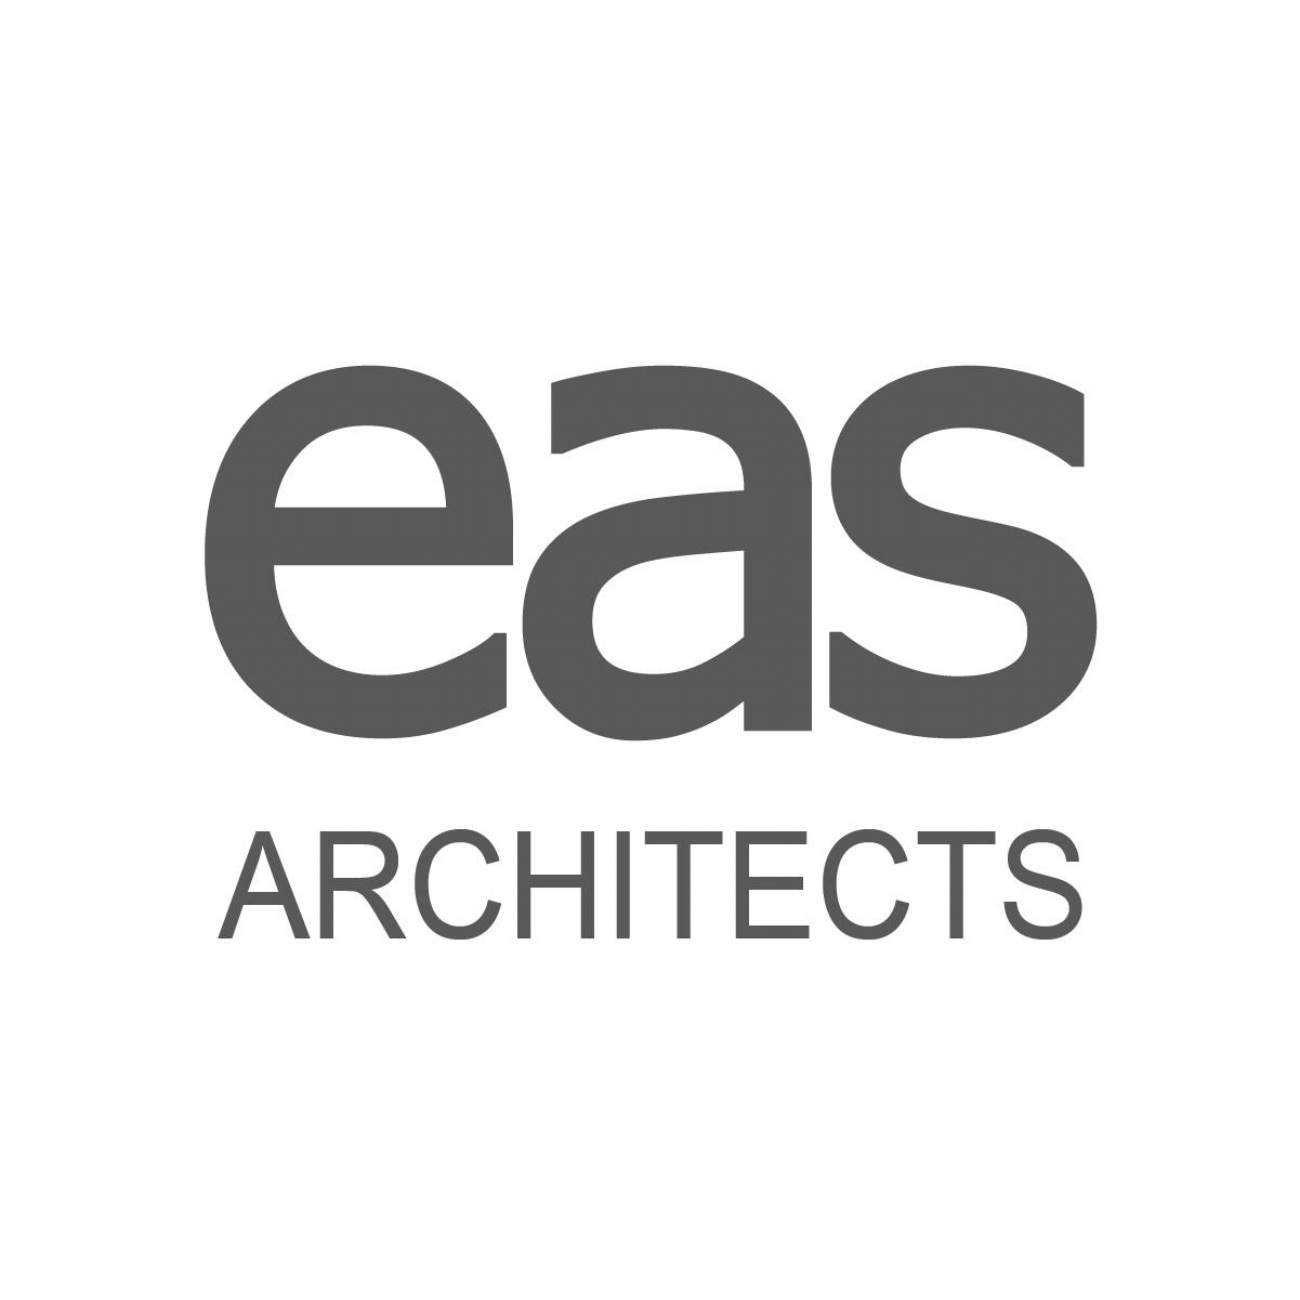 Easterwood Architects Studio